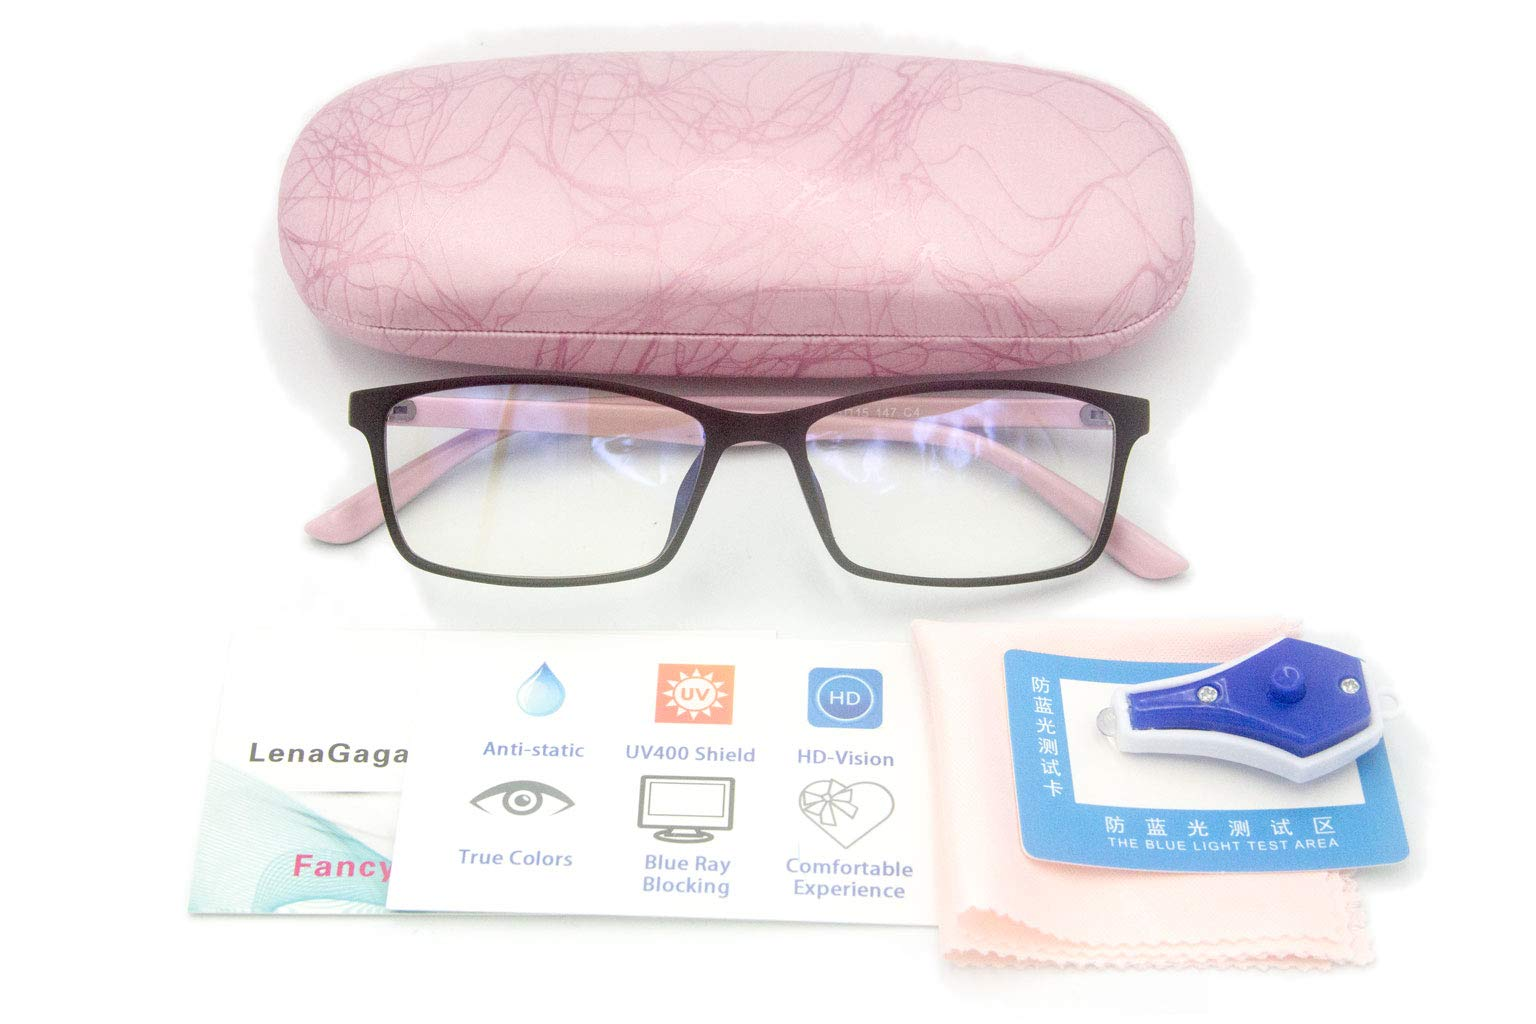 Women Anti Blue Light Glasses Block Eye Strain Glare with Case Tester, Gaming Computer Glasses Blue Light Block Glasses Filter UV Blocker Clear Lens Small Face Narrow Rectangle Nerd Frame Pink Black by Lena Gaga